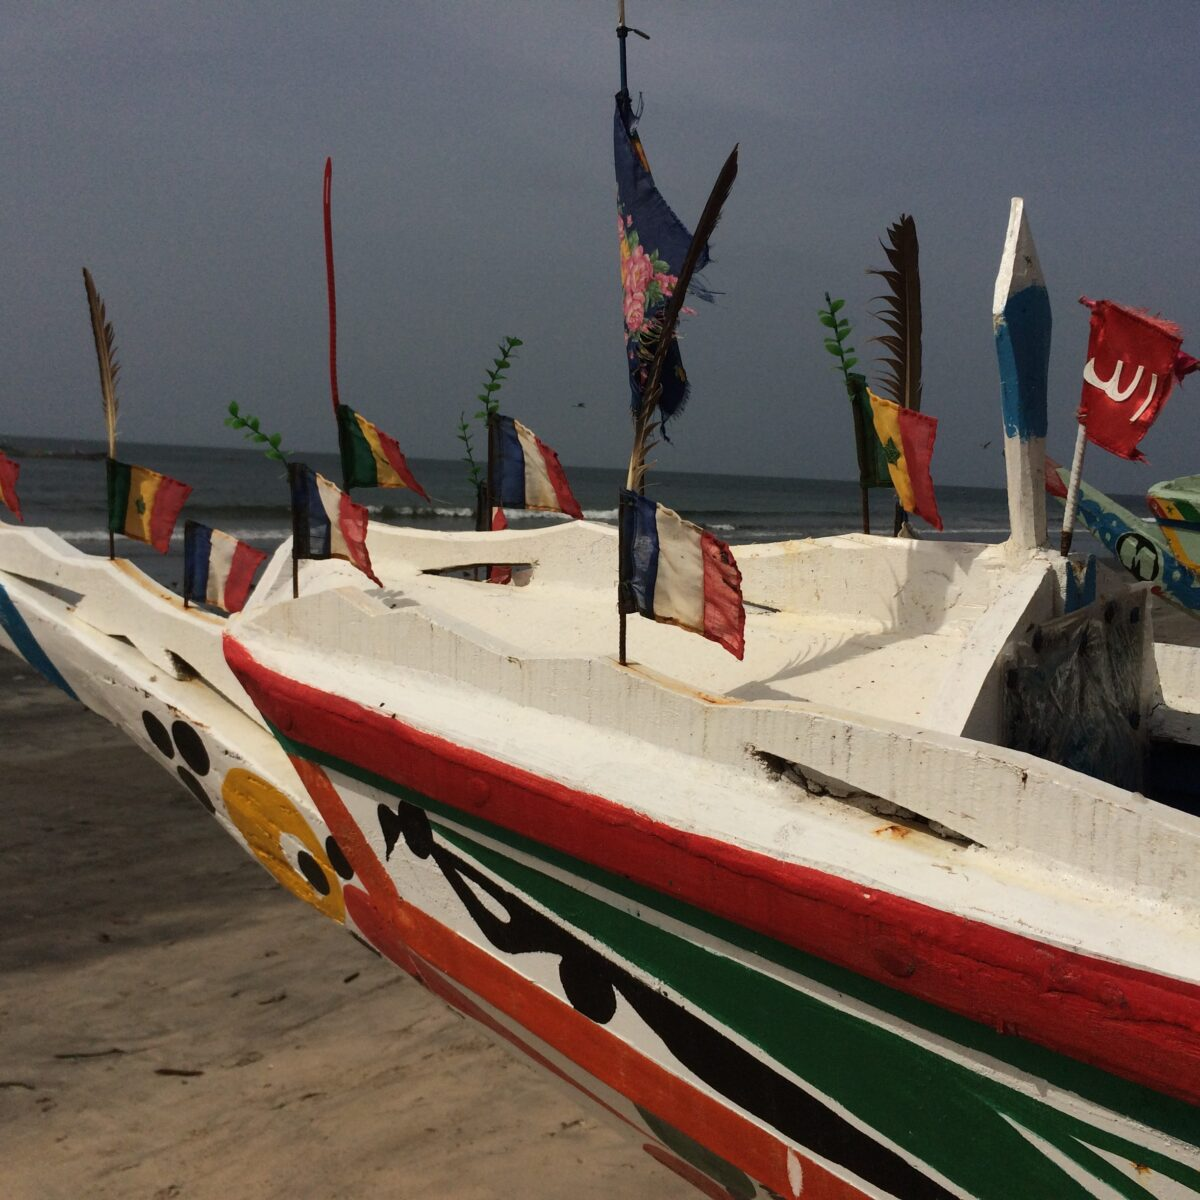 Boat with flags